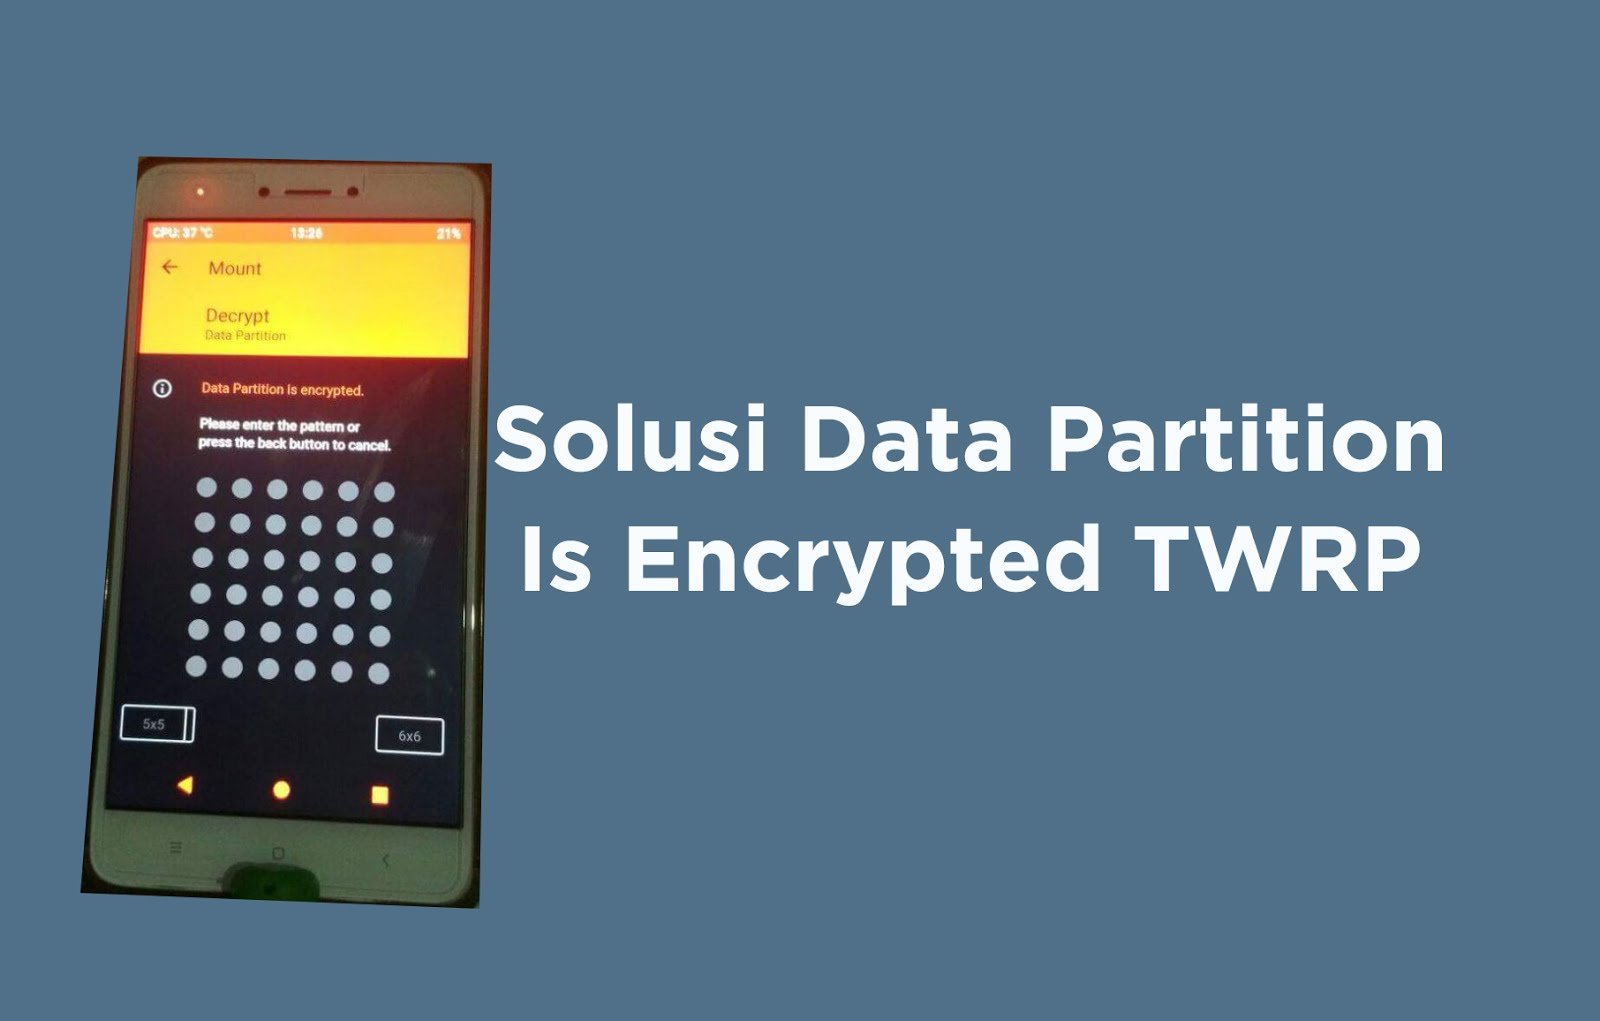 Solusi Data Partition Is Encrypted TWRP